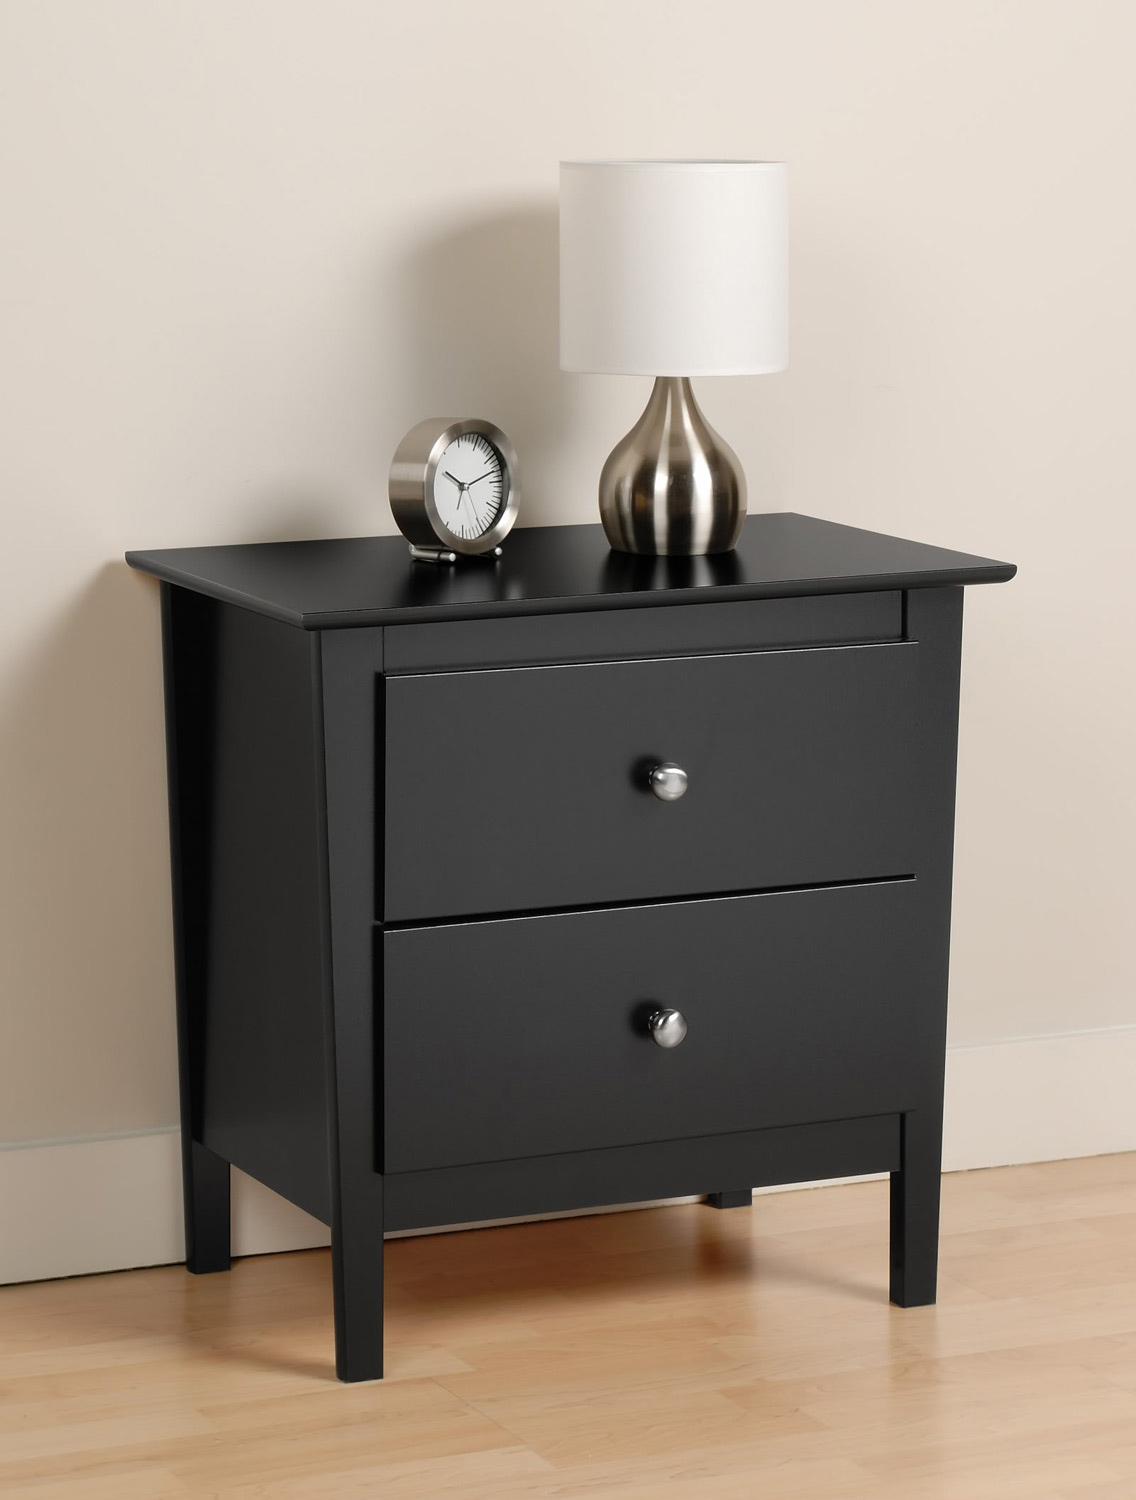 Prepac Berkshire 2 Drawer Night Stand - Black